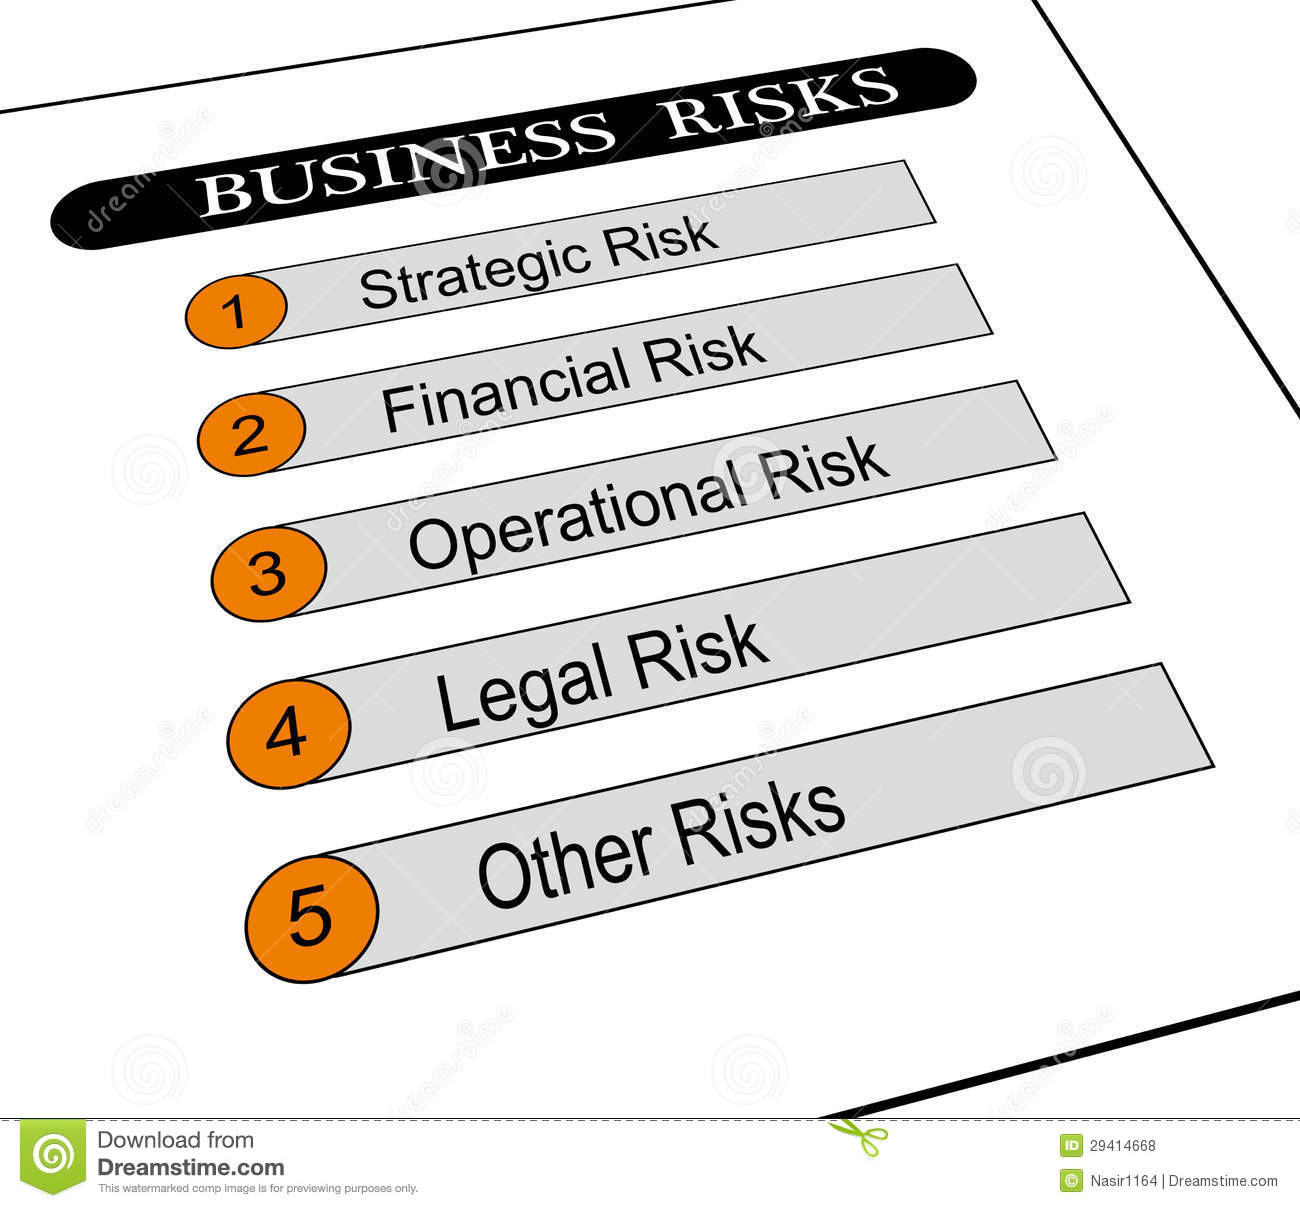 commercial risk in international business Clements worldwide has over 70 years of experience providing international commercial insurance coverage to organizations around the world, including in high-risk.